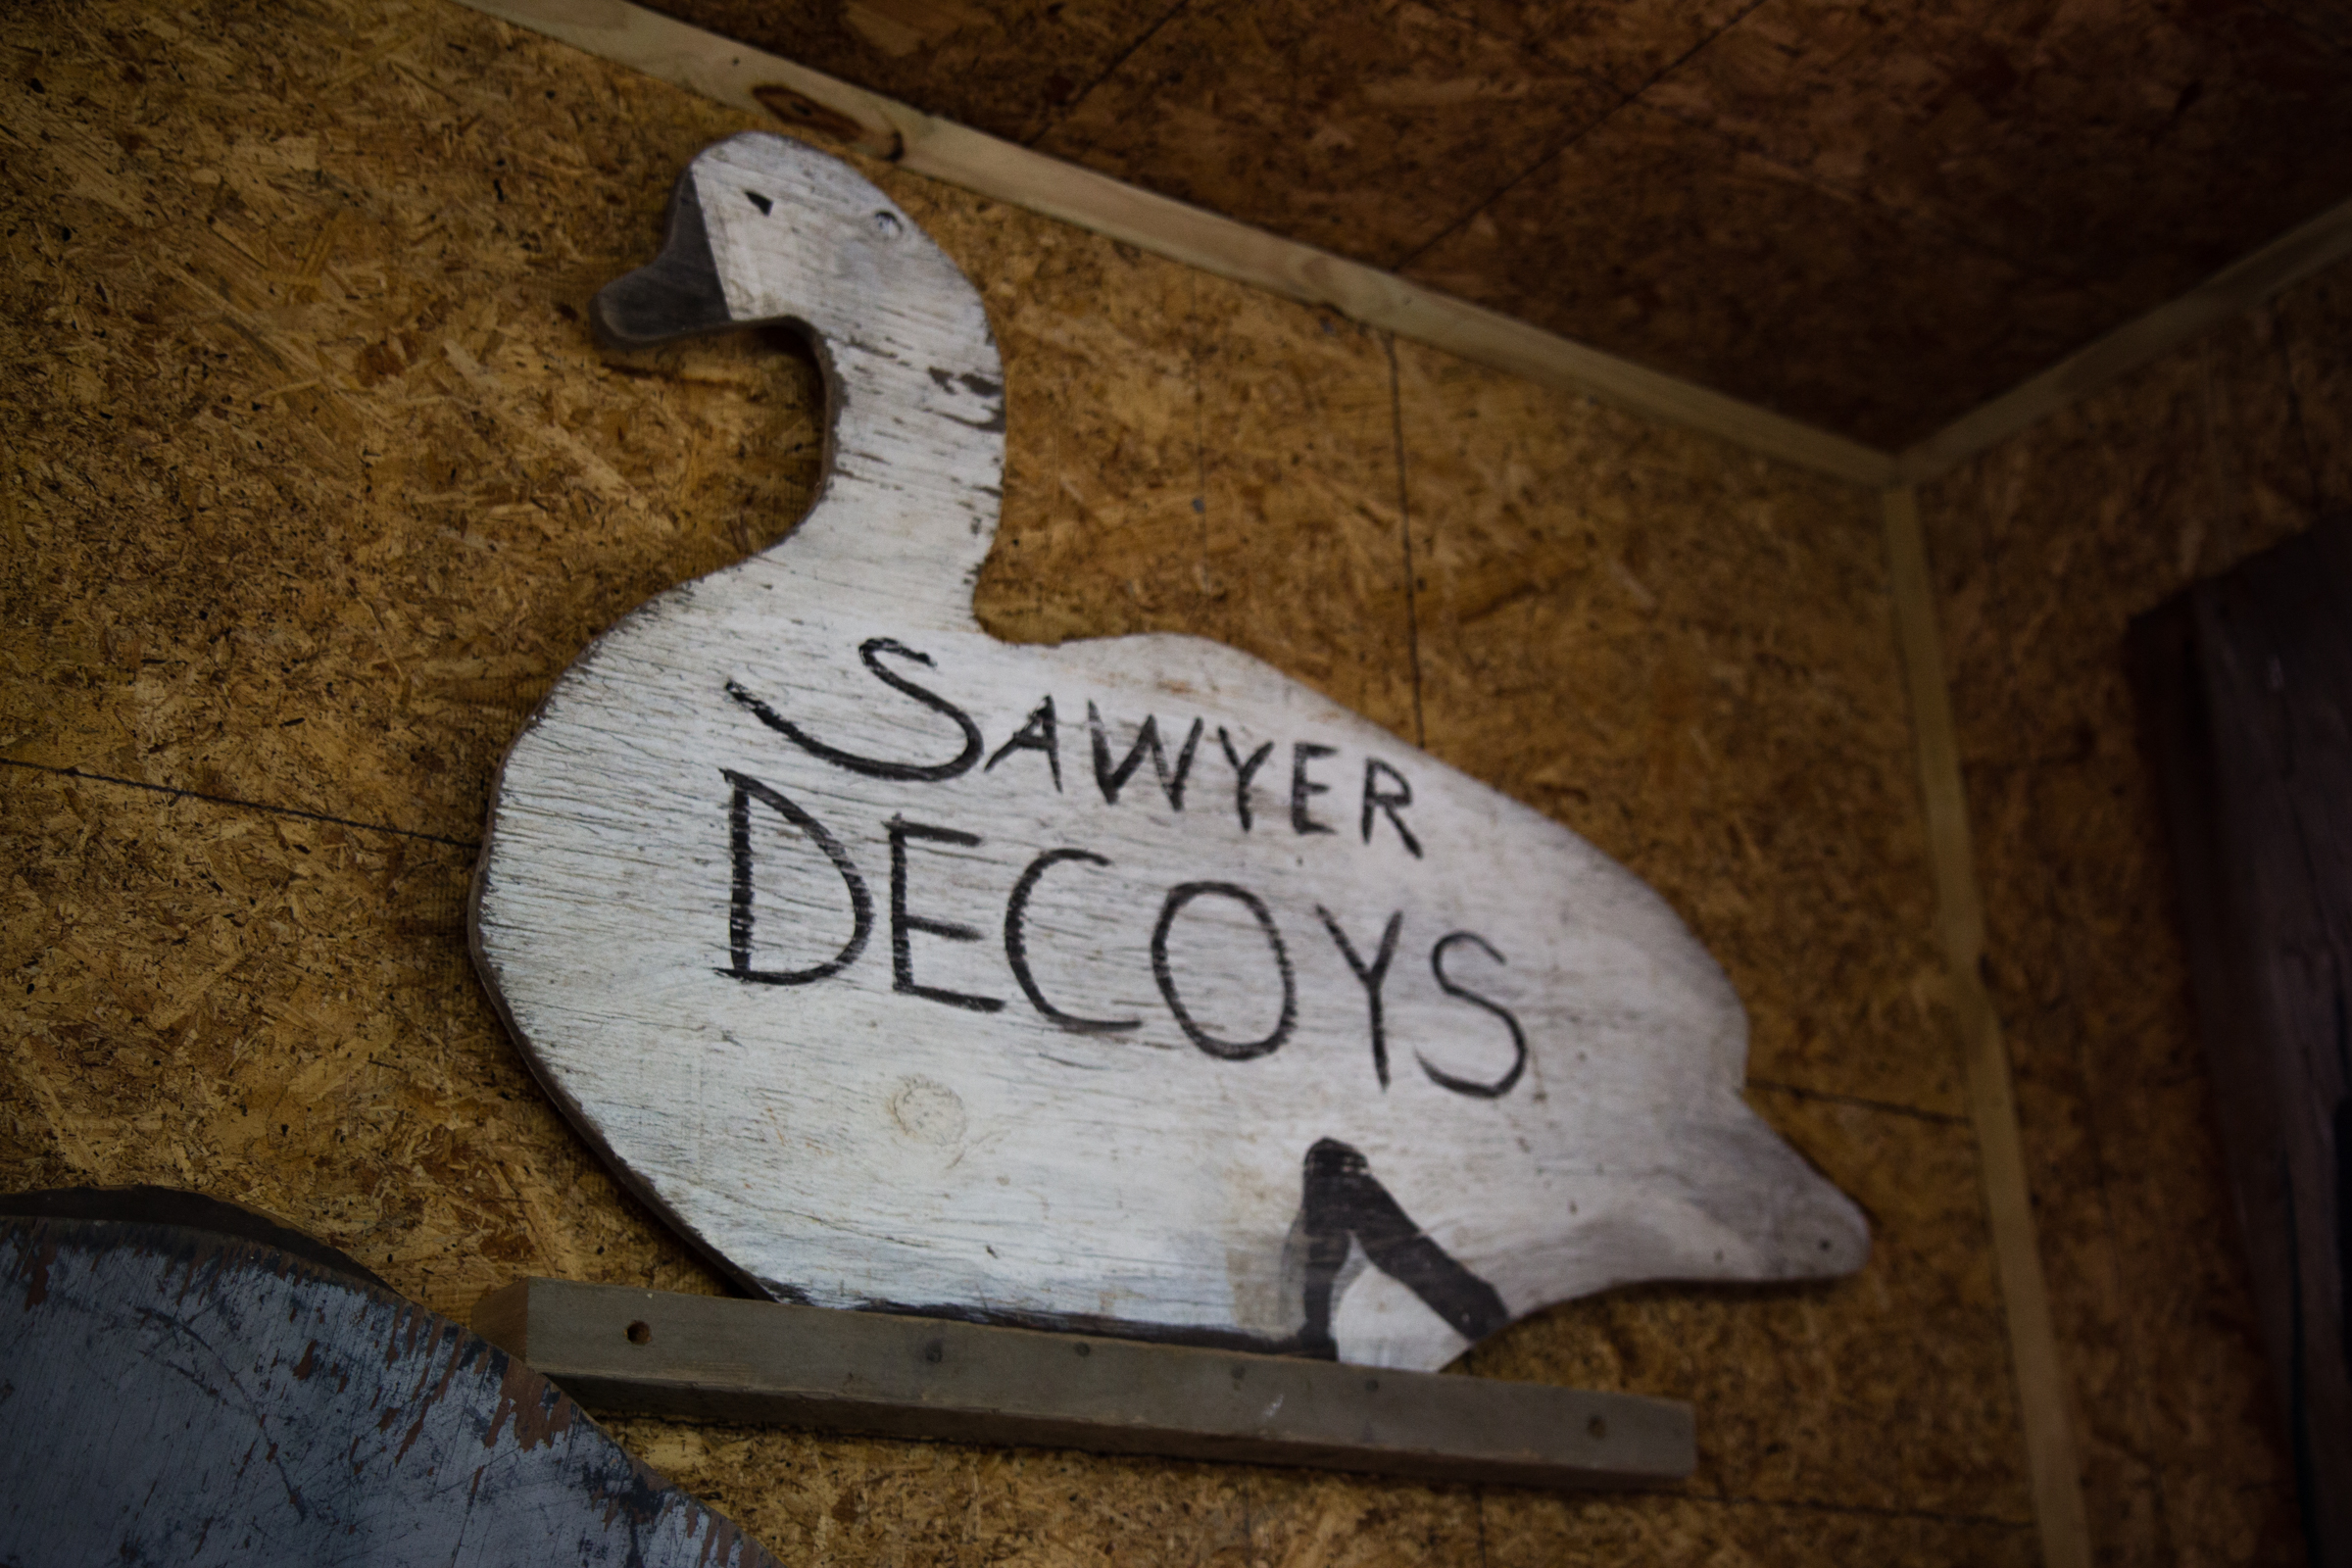 Sawyer Decoys